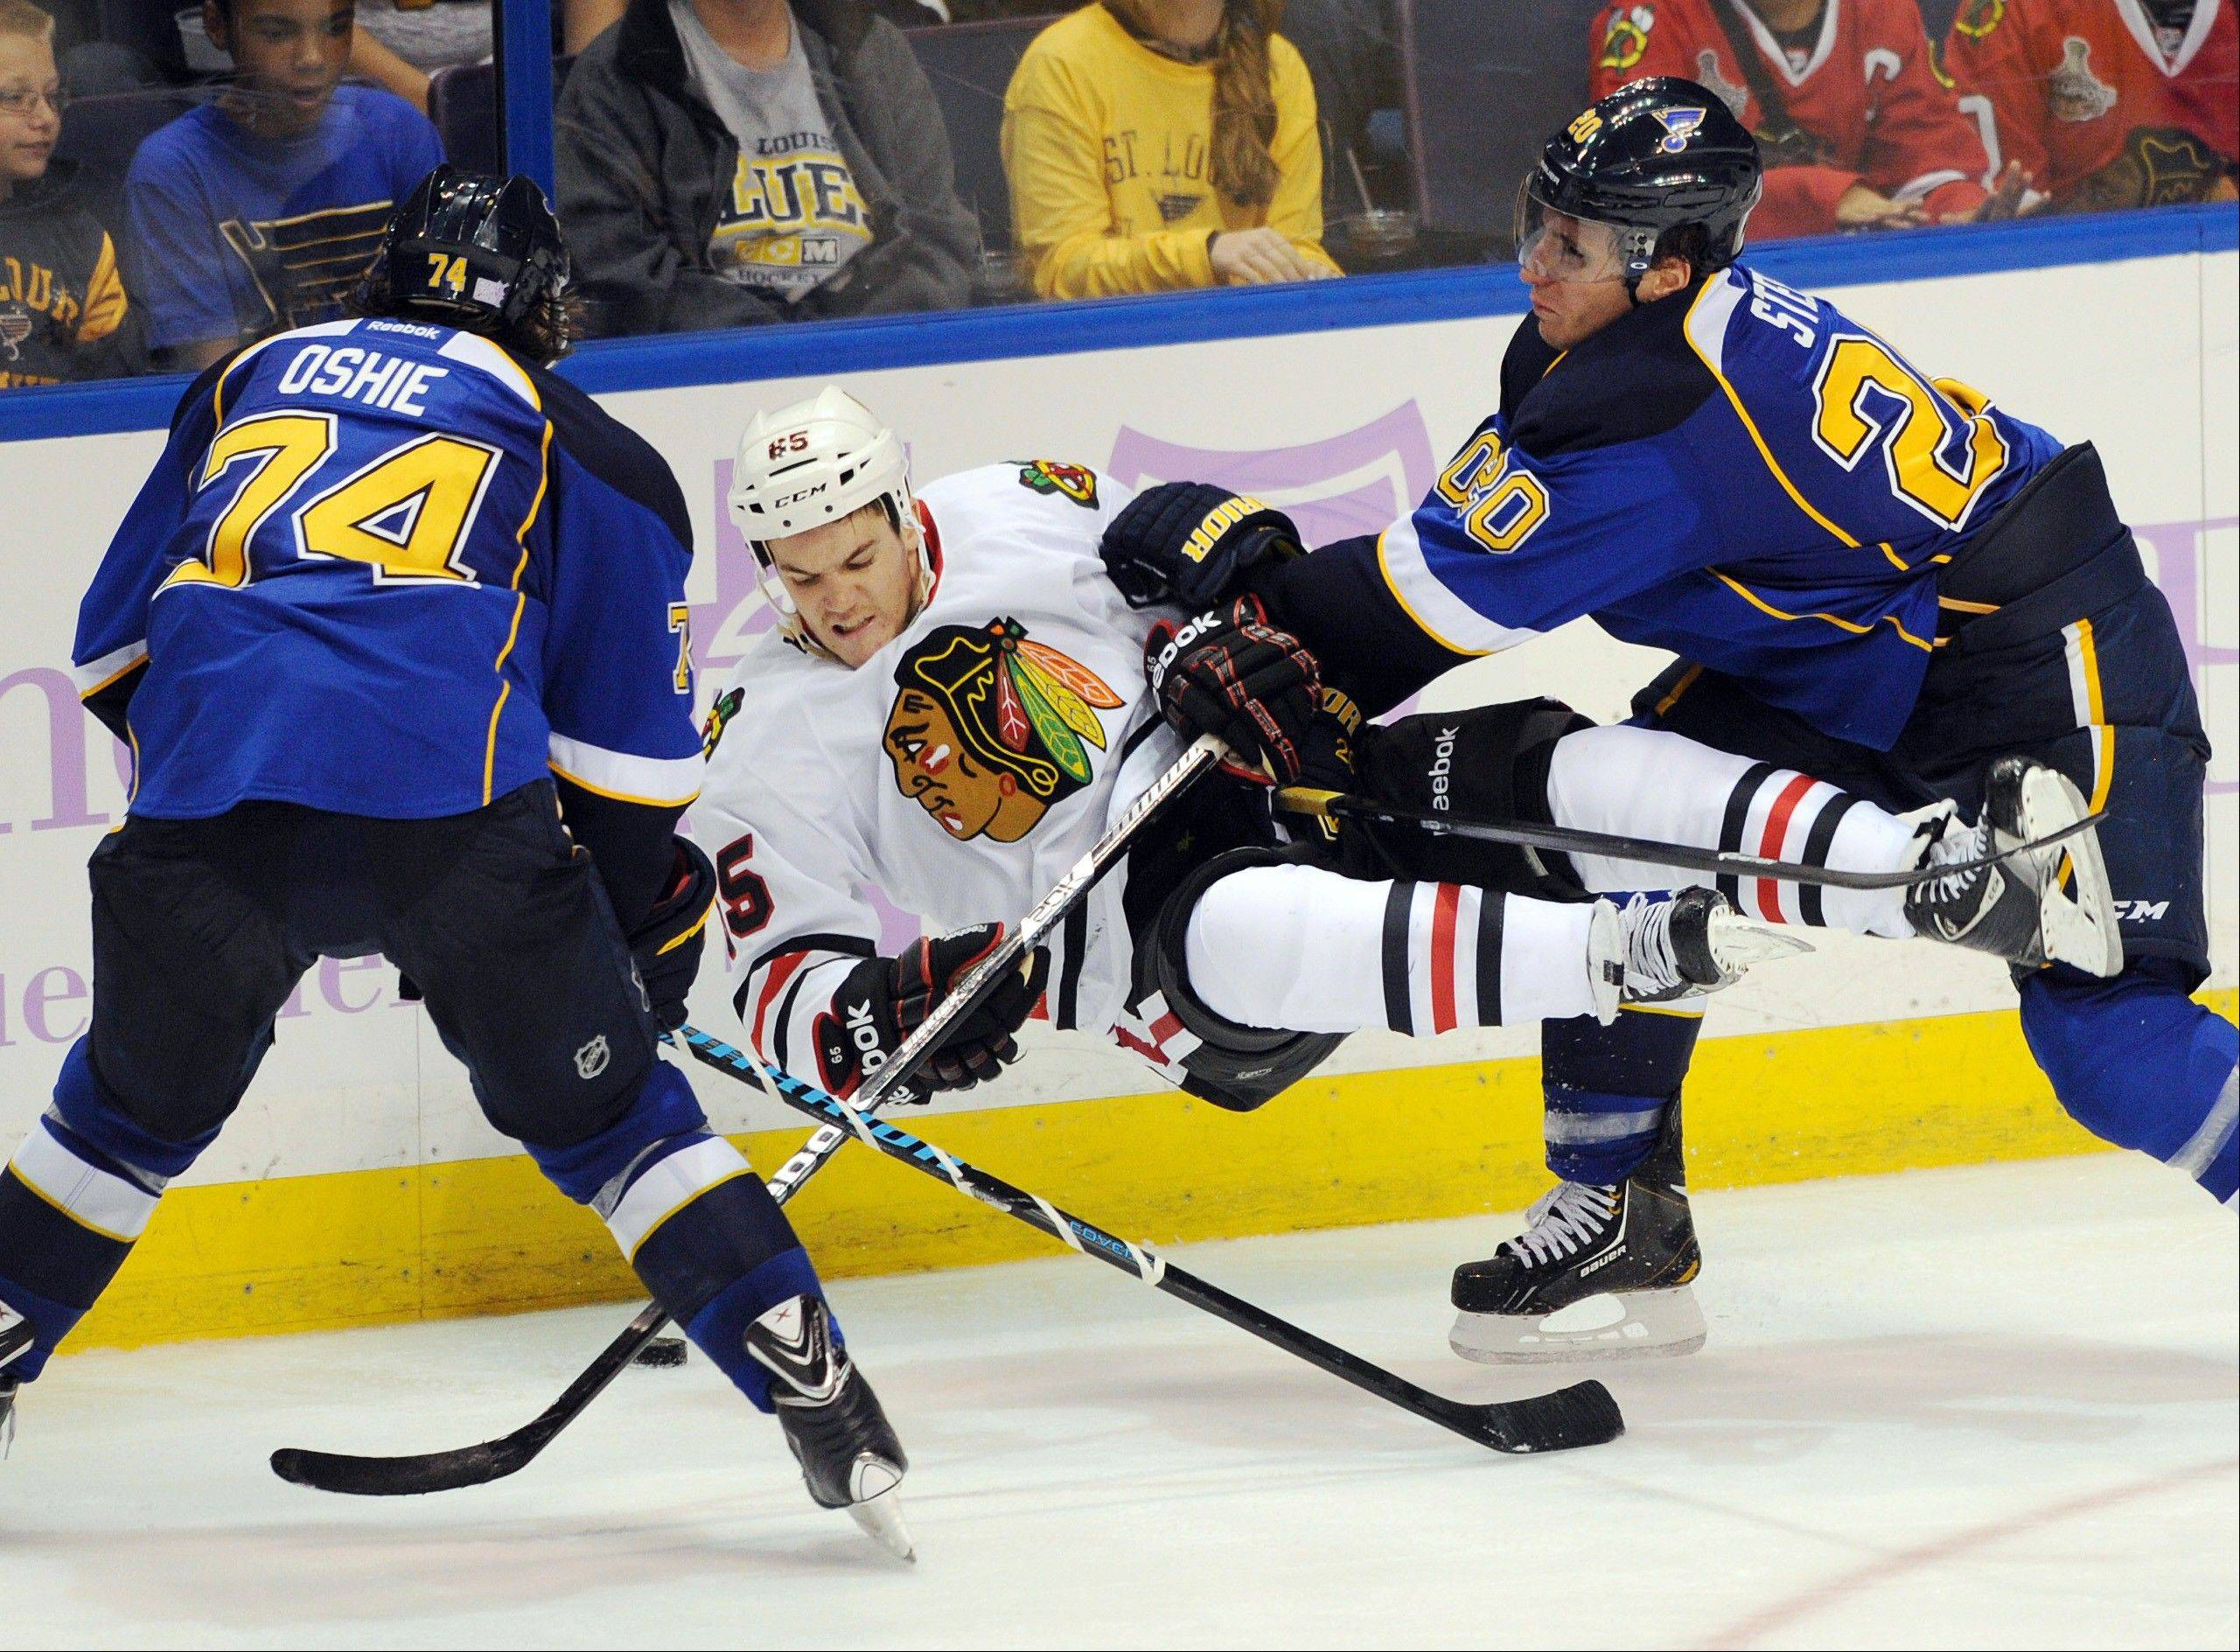 The St. Louis Blues' Alexander Steen, right, checks the Blackhawks' Andrew Shaw, center, as Blues' T.J. Oshie watches during the third period of an NHL hockey game Wednesday, Oct. 9, 2013, in St. Louis.